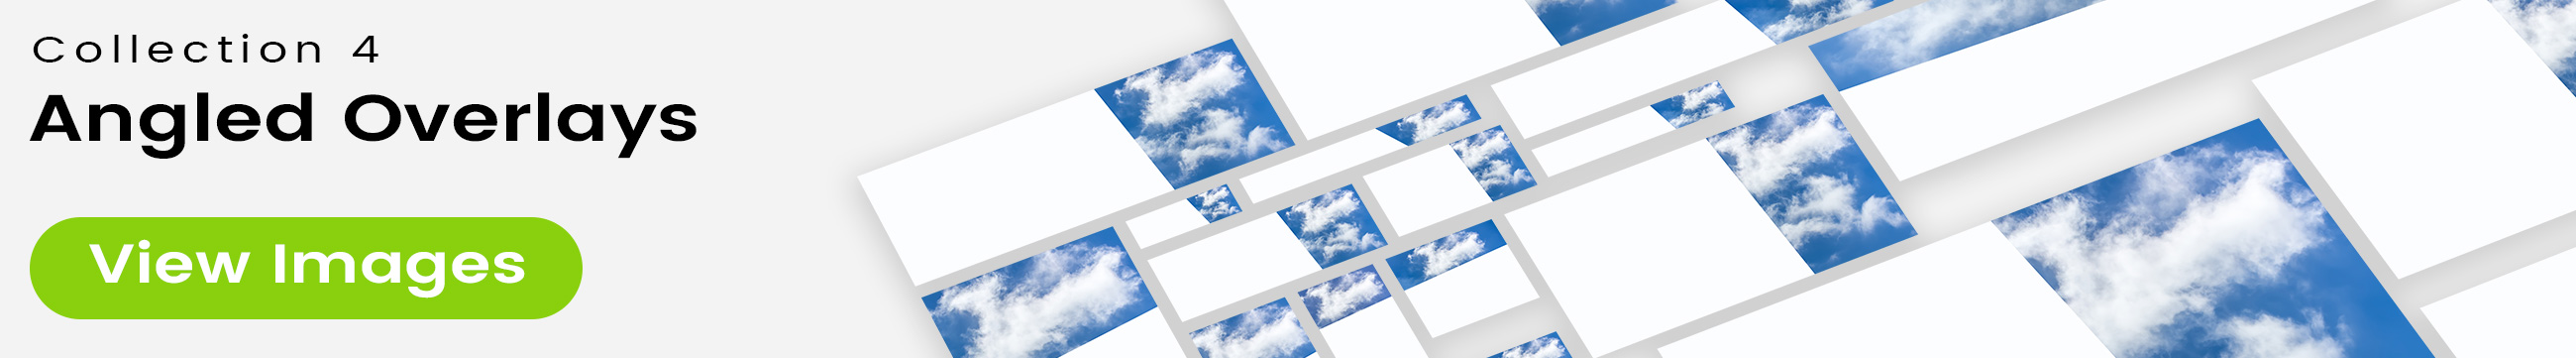 See 25 bonus images included with clouds stock image 9473. Collection 4 of 4 features an angled overlay design customized with a color that complements each photo.